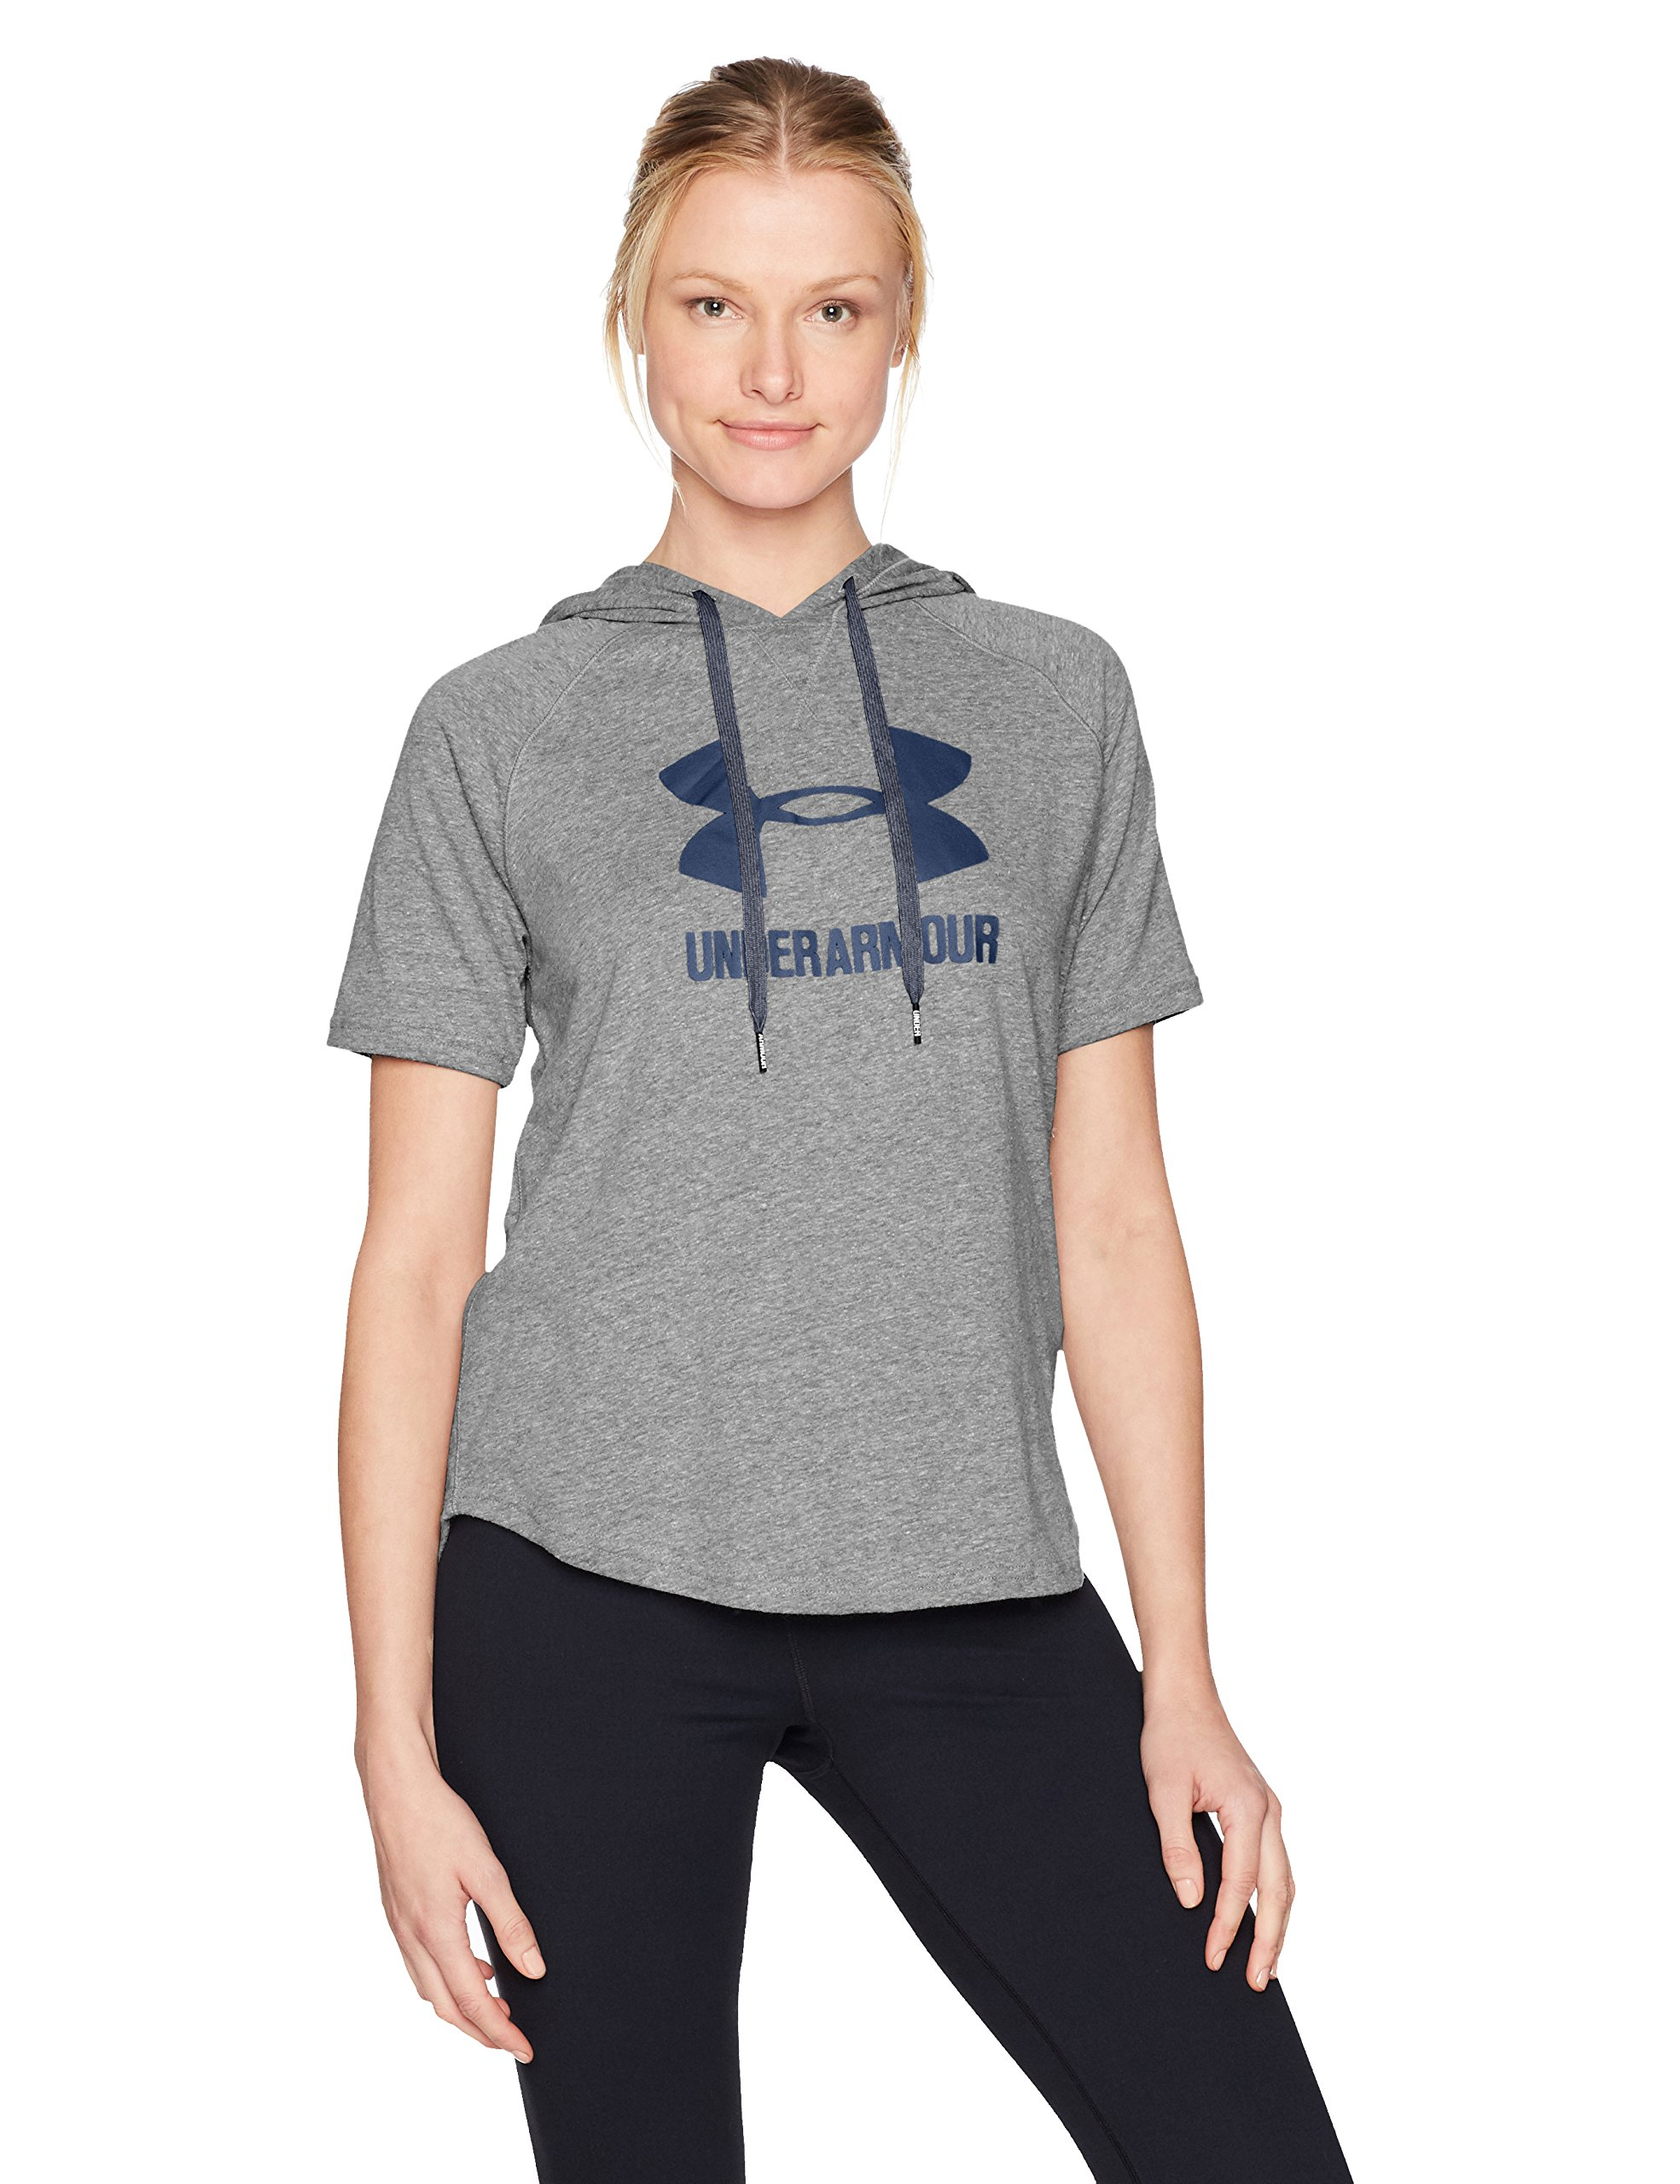 Under Armour Women's Sportstyle Short Sleeve Hoodie, Charcoal (020)/Midnight Navy, X-Small